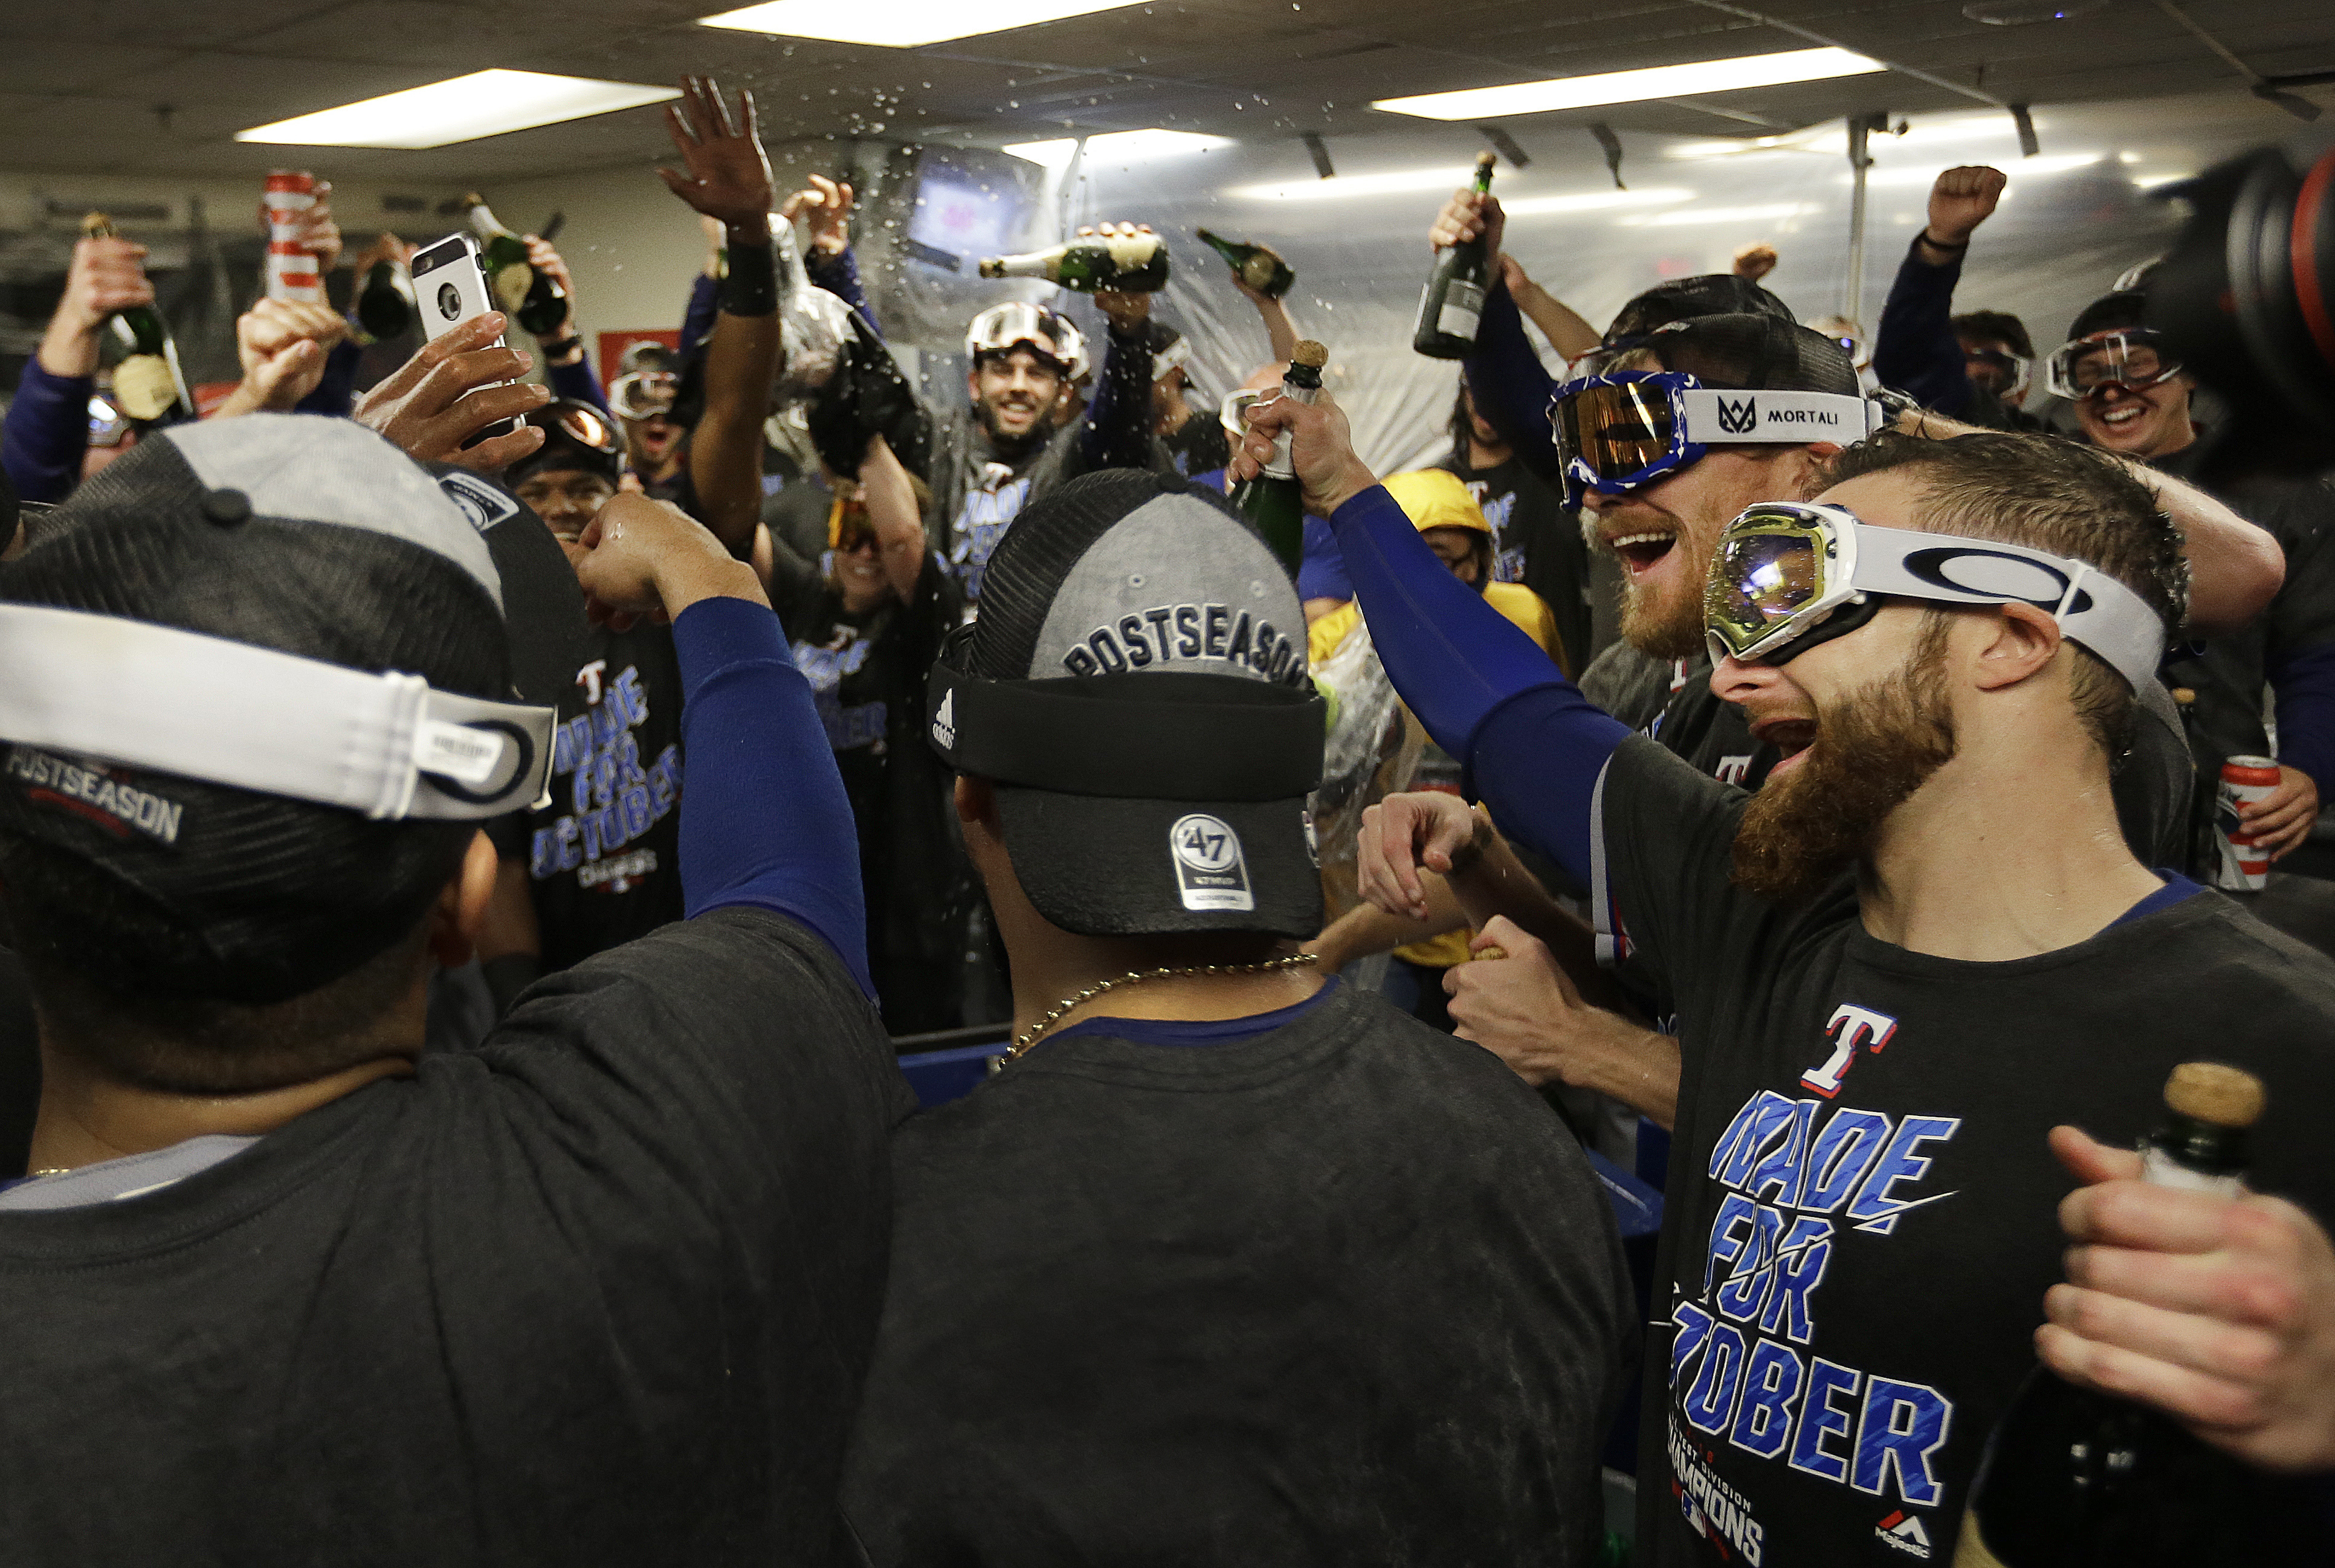 Texas Rangers celebrate after clinching the American League Western Division after a baseball game against the Oakland Athletics Friday, Sept. 23, 2016, in Oakland, Calif. (AP Photo/Ben Margot)